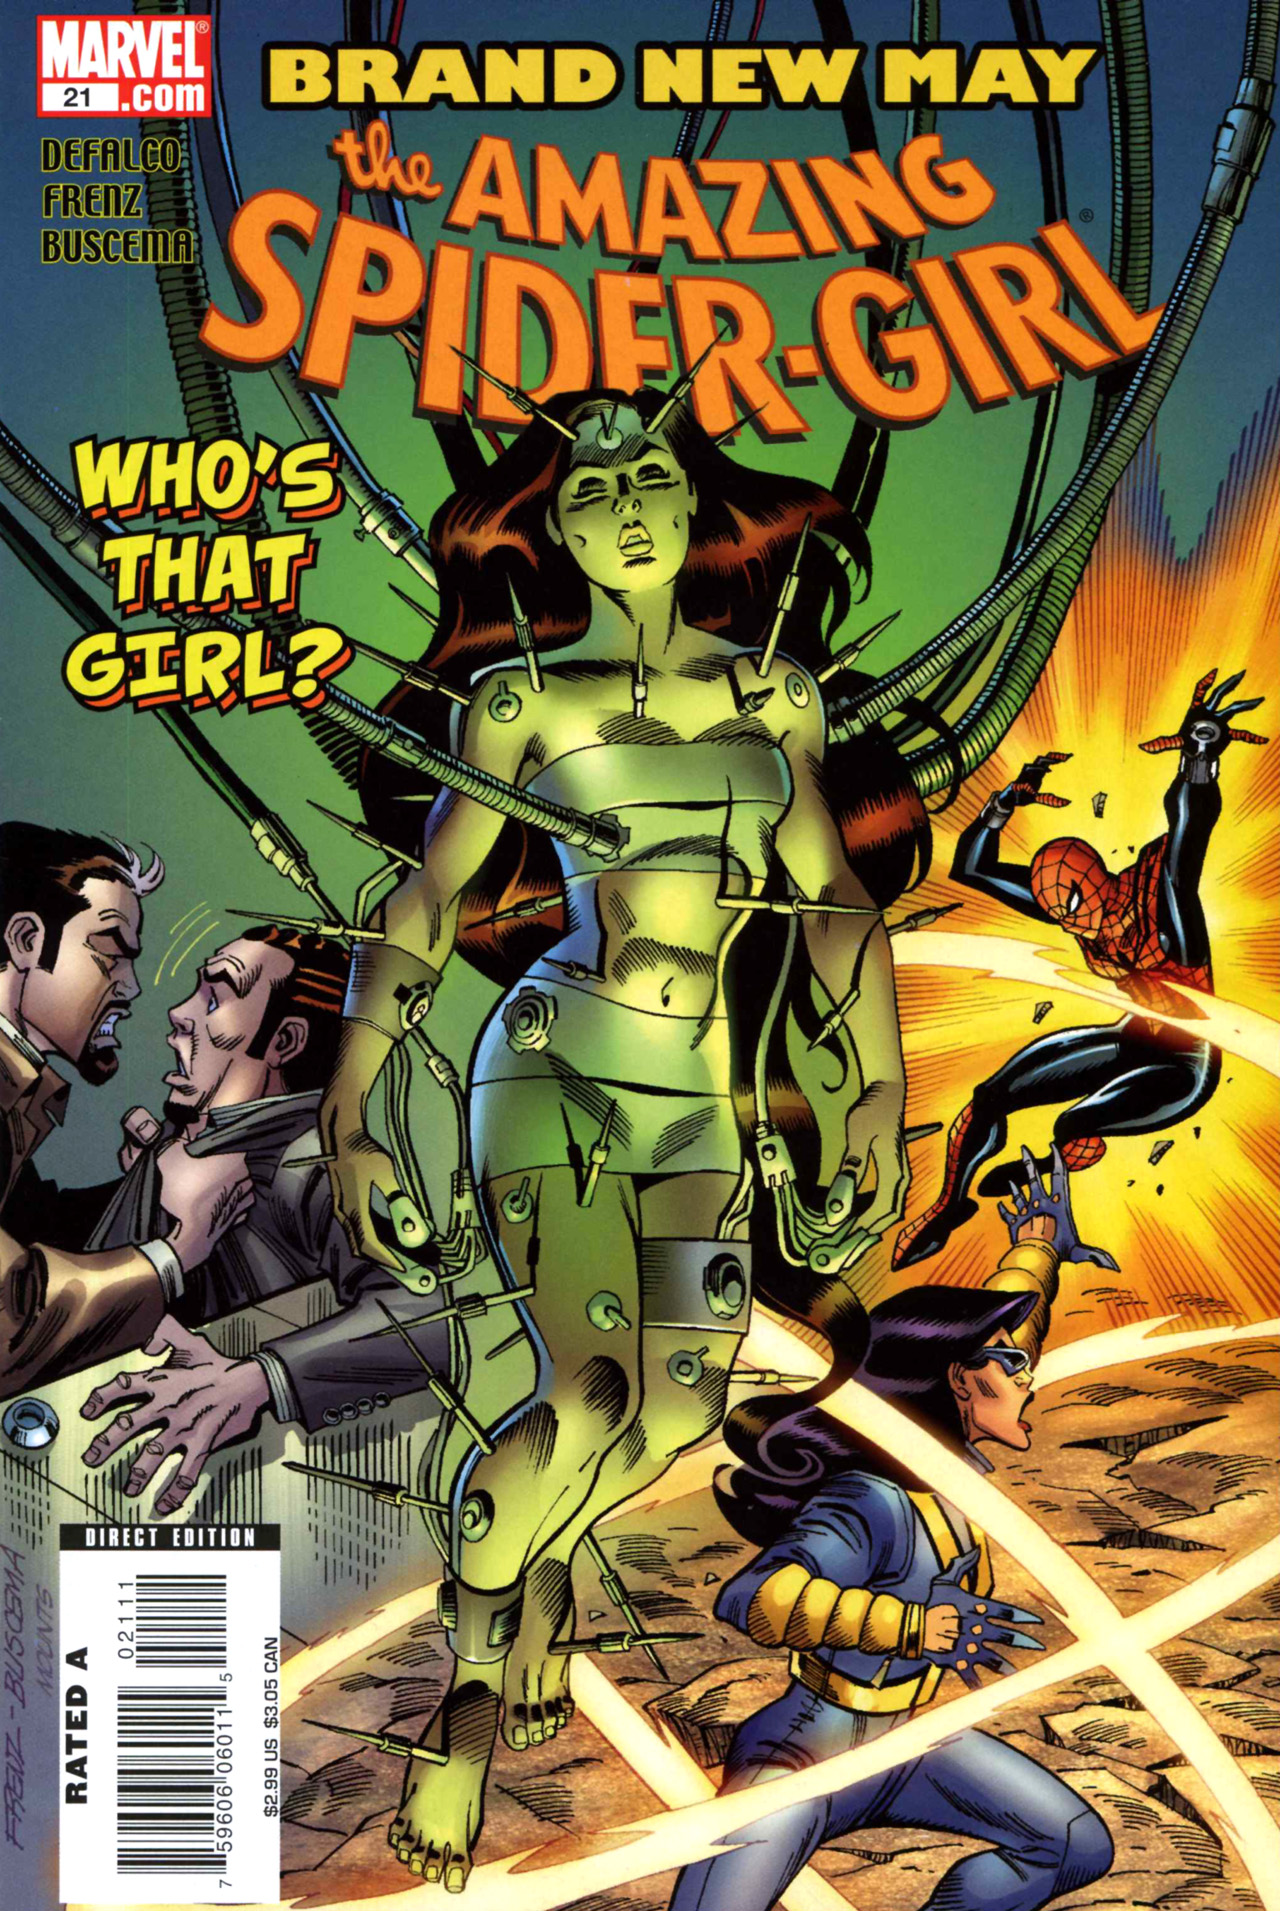 Read online Amazing Spider-Girl comic -  Issue #21 - 1